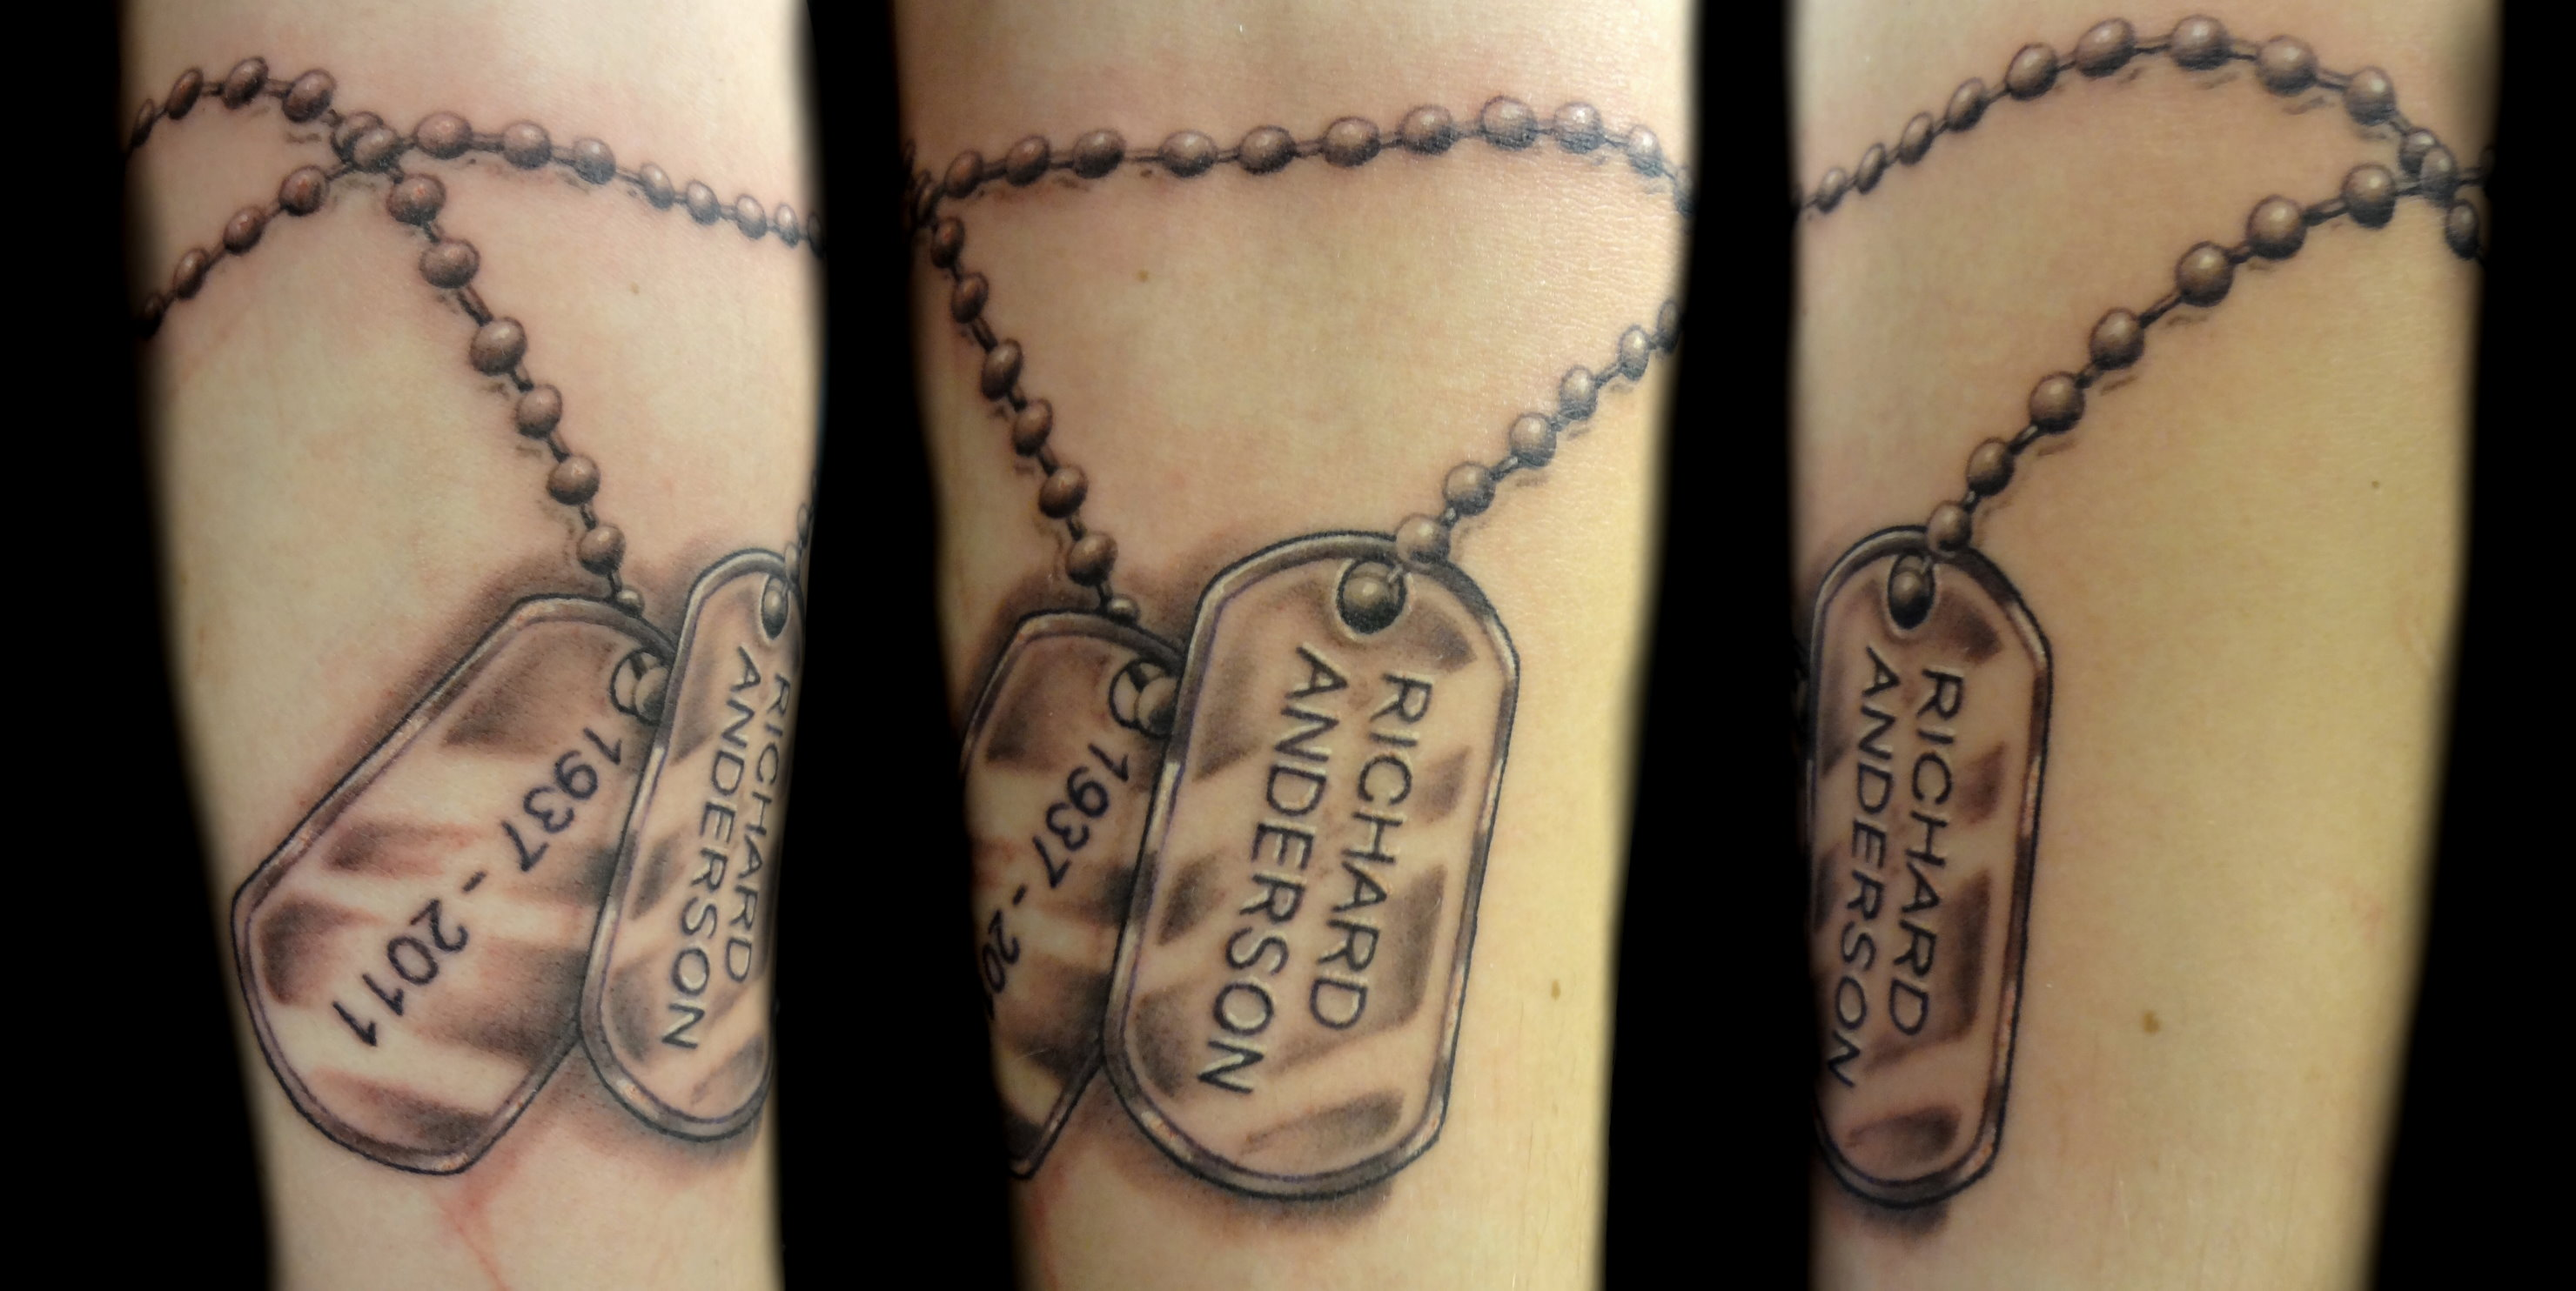 dog tags - left forearm